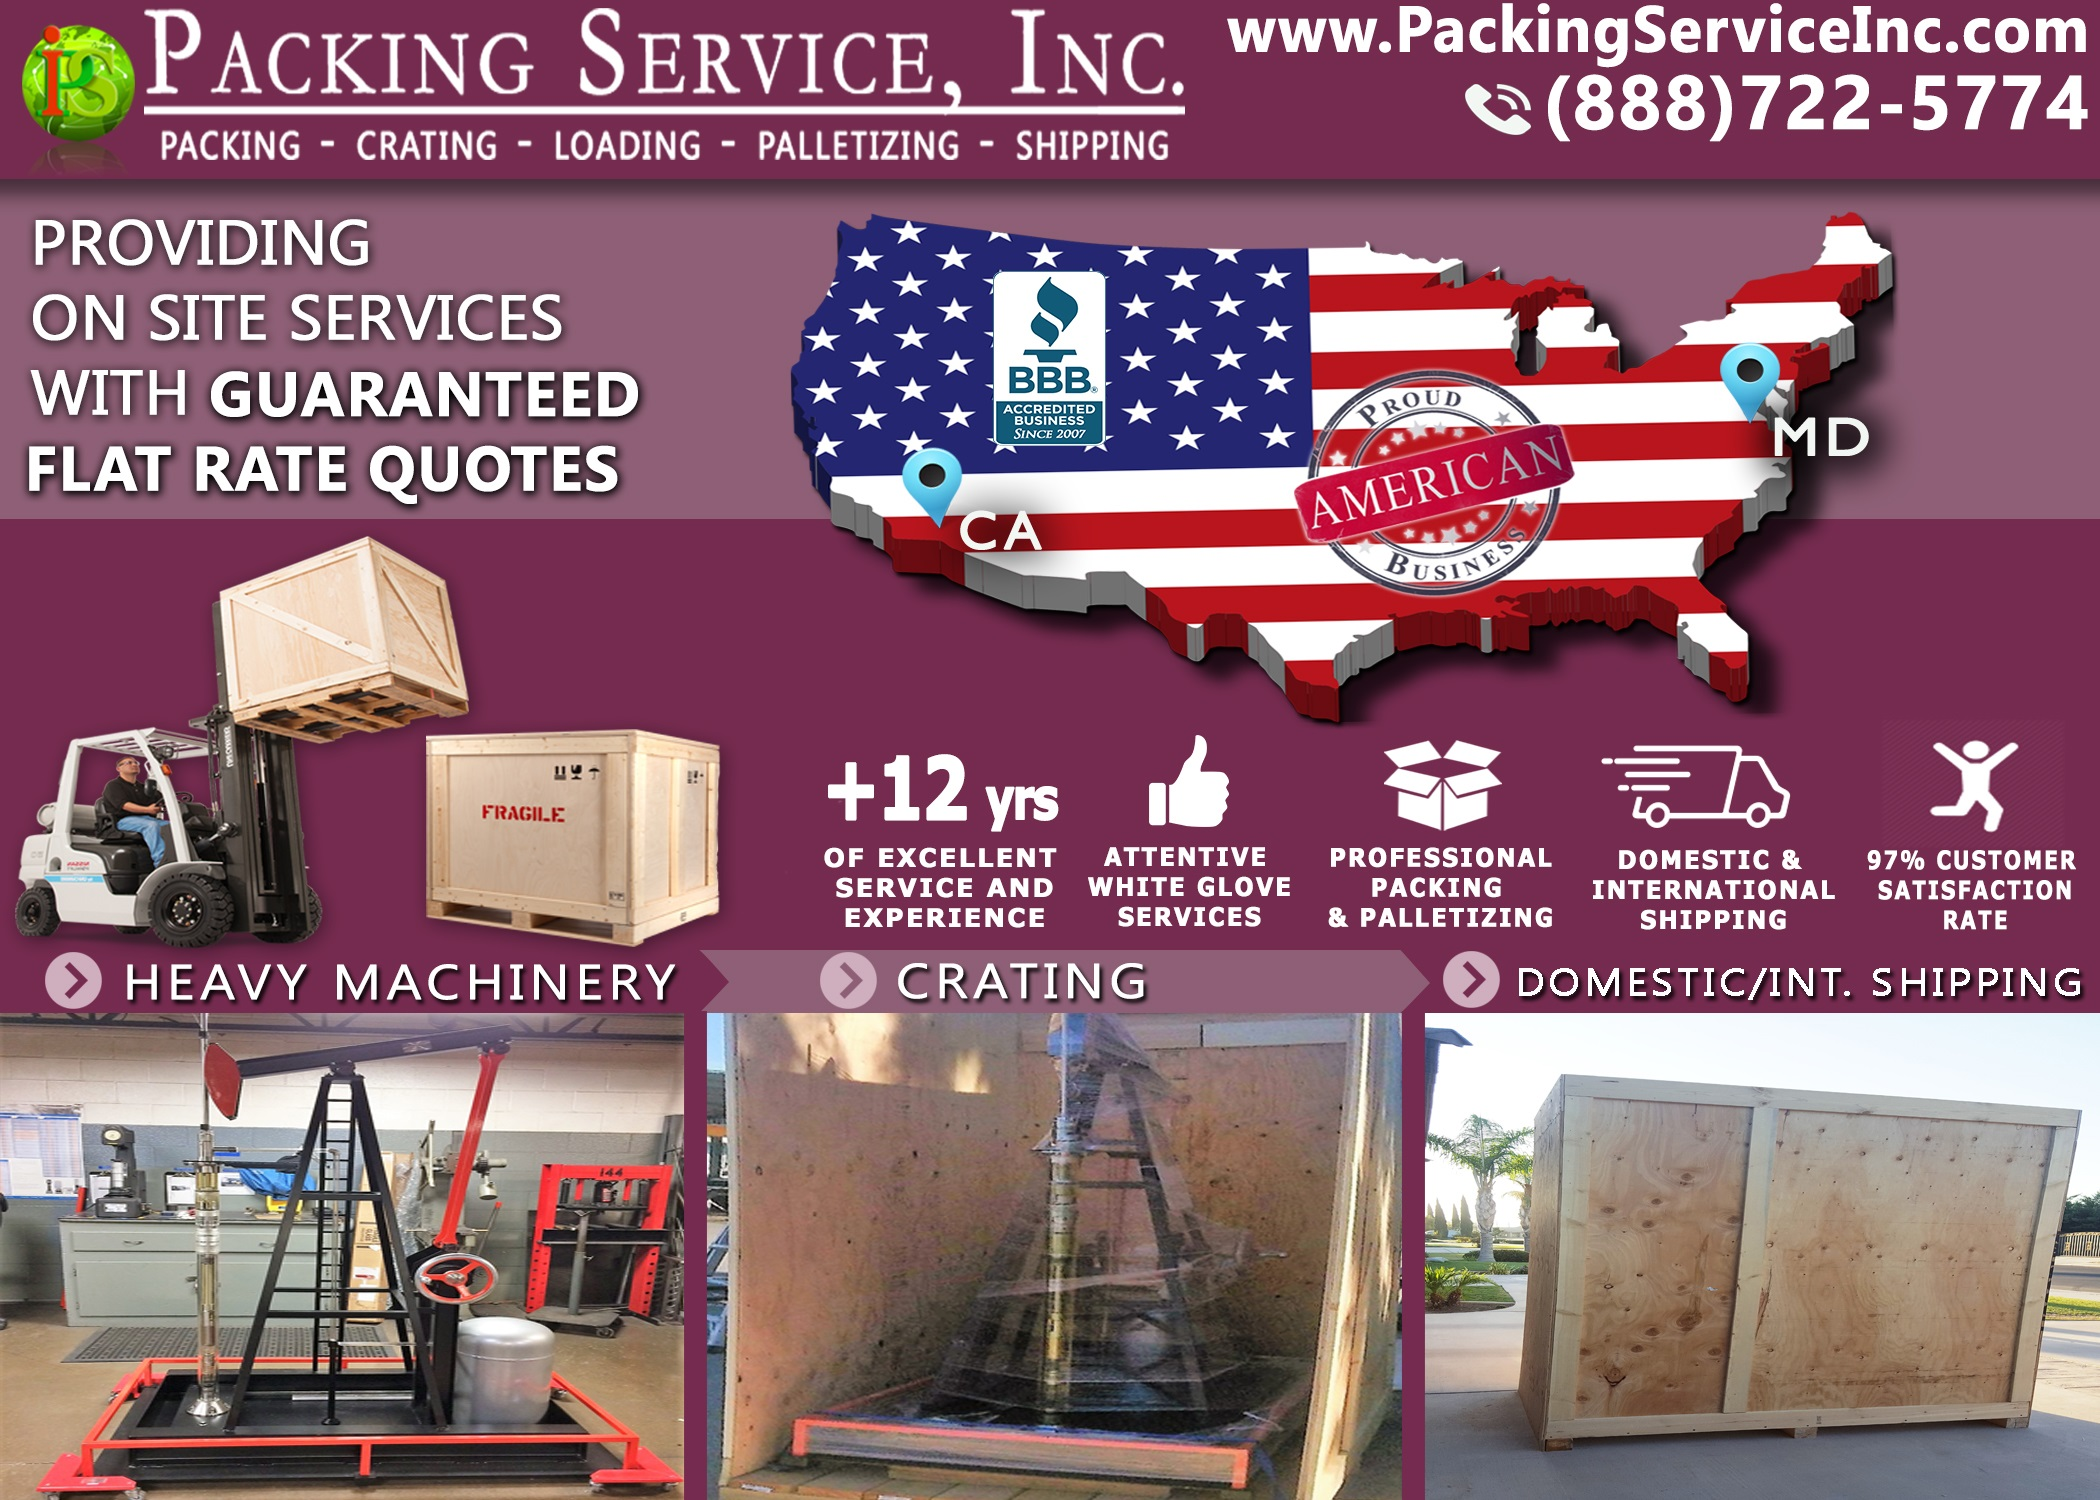 crating-machinery-and-shipping-services-from-maryland-to-california-with-packing-service-inc-555